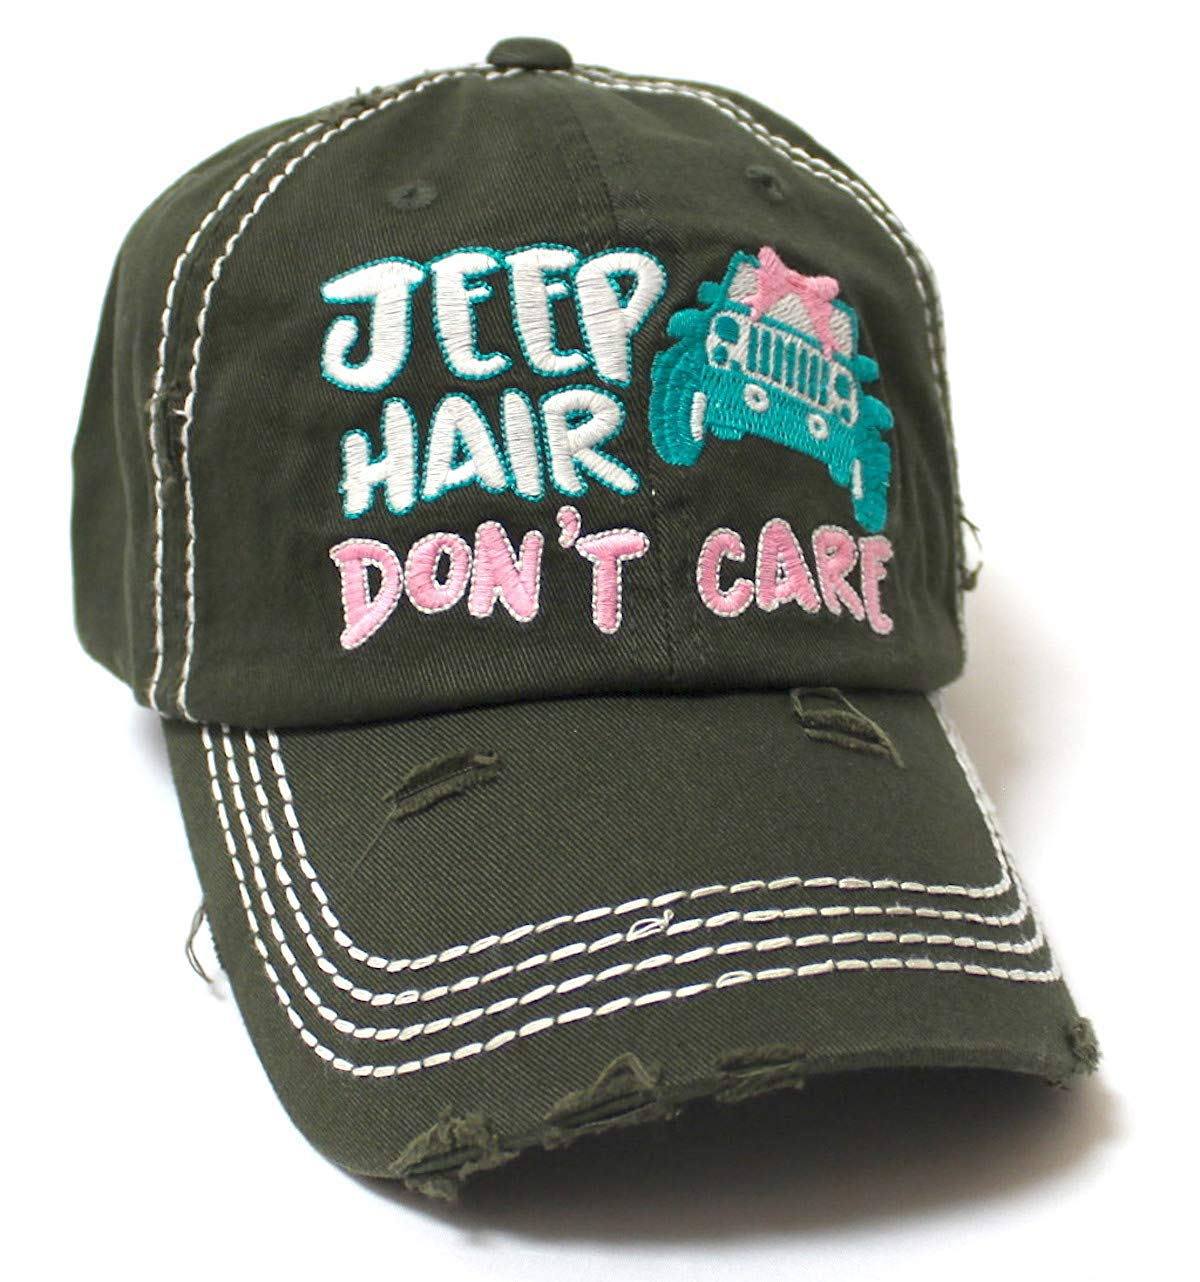 Ladies Bow-Tie Jeep Hair Don't Care Monogram Cheer Baseball Hat, Dark Olive - Caps 'N Vintage